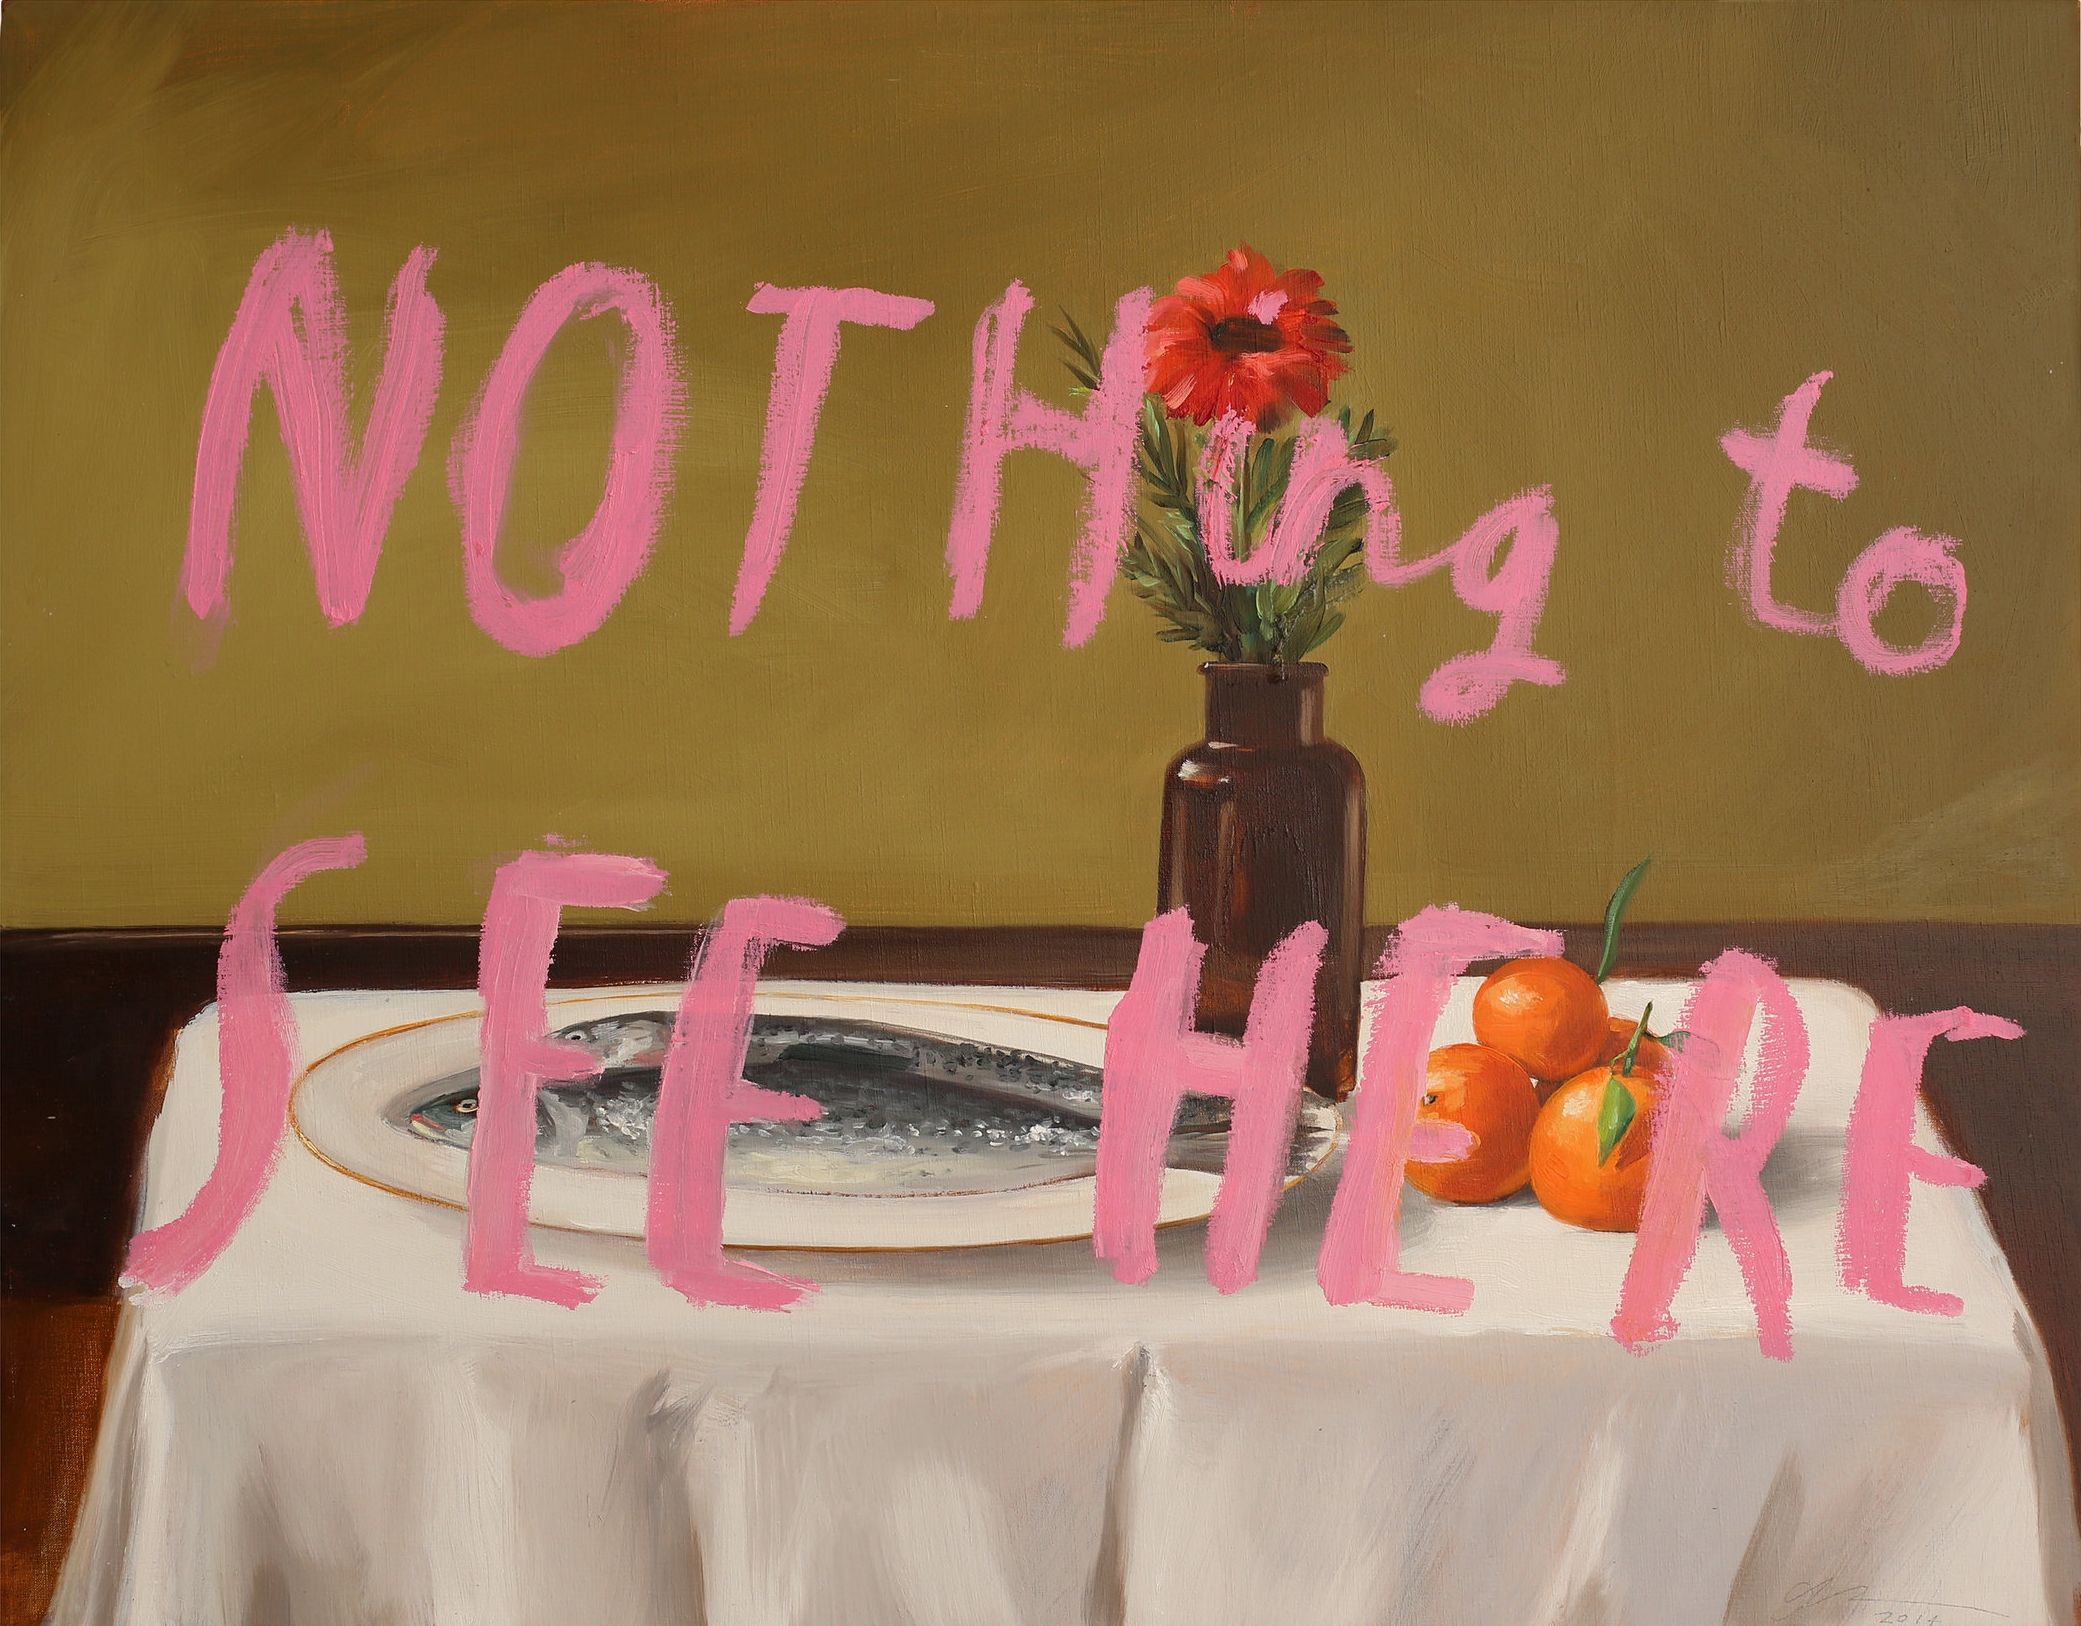 Nothing to See Here artwork